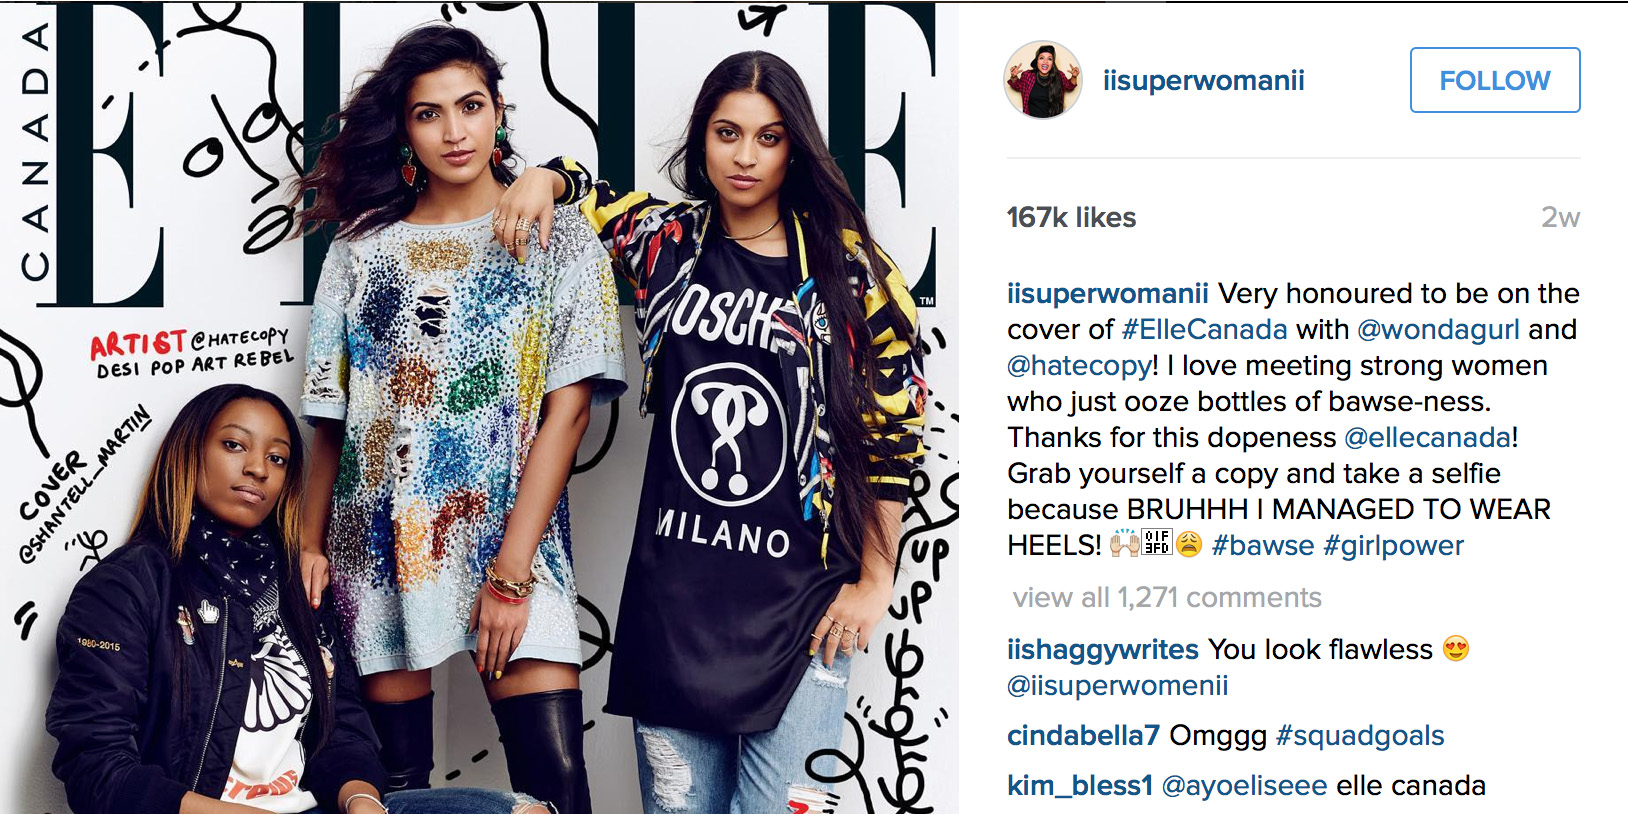 take-a-selfie-win-an-issue-of-our-march-2015-magazine-signed-by-lilly-singh-wondagurl-and-hatecopy-3